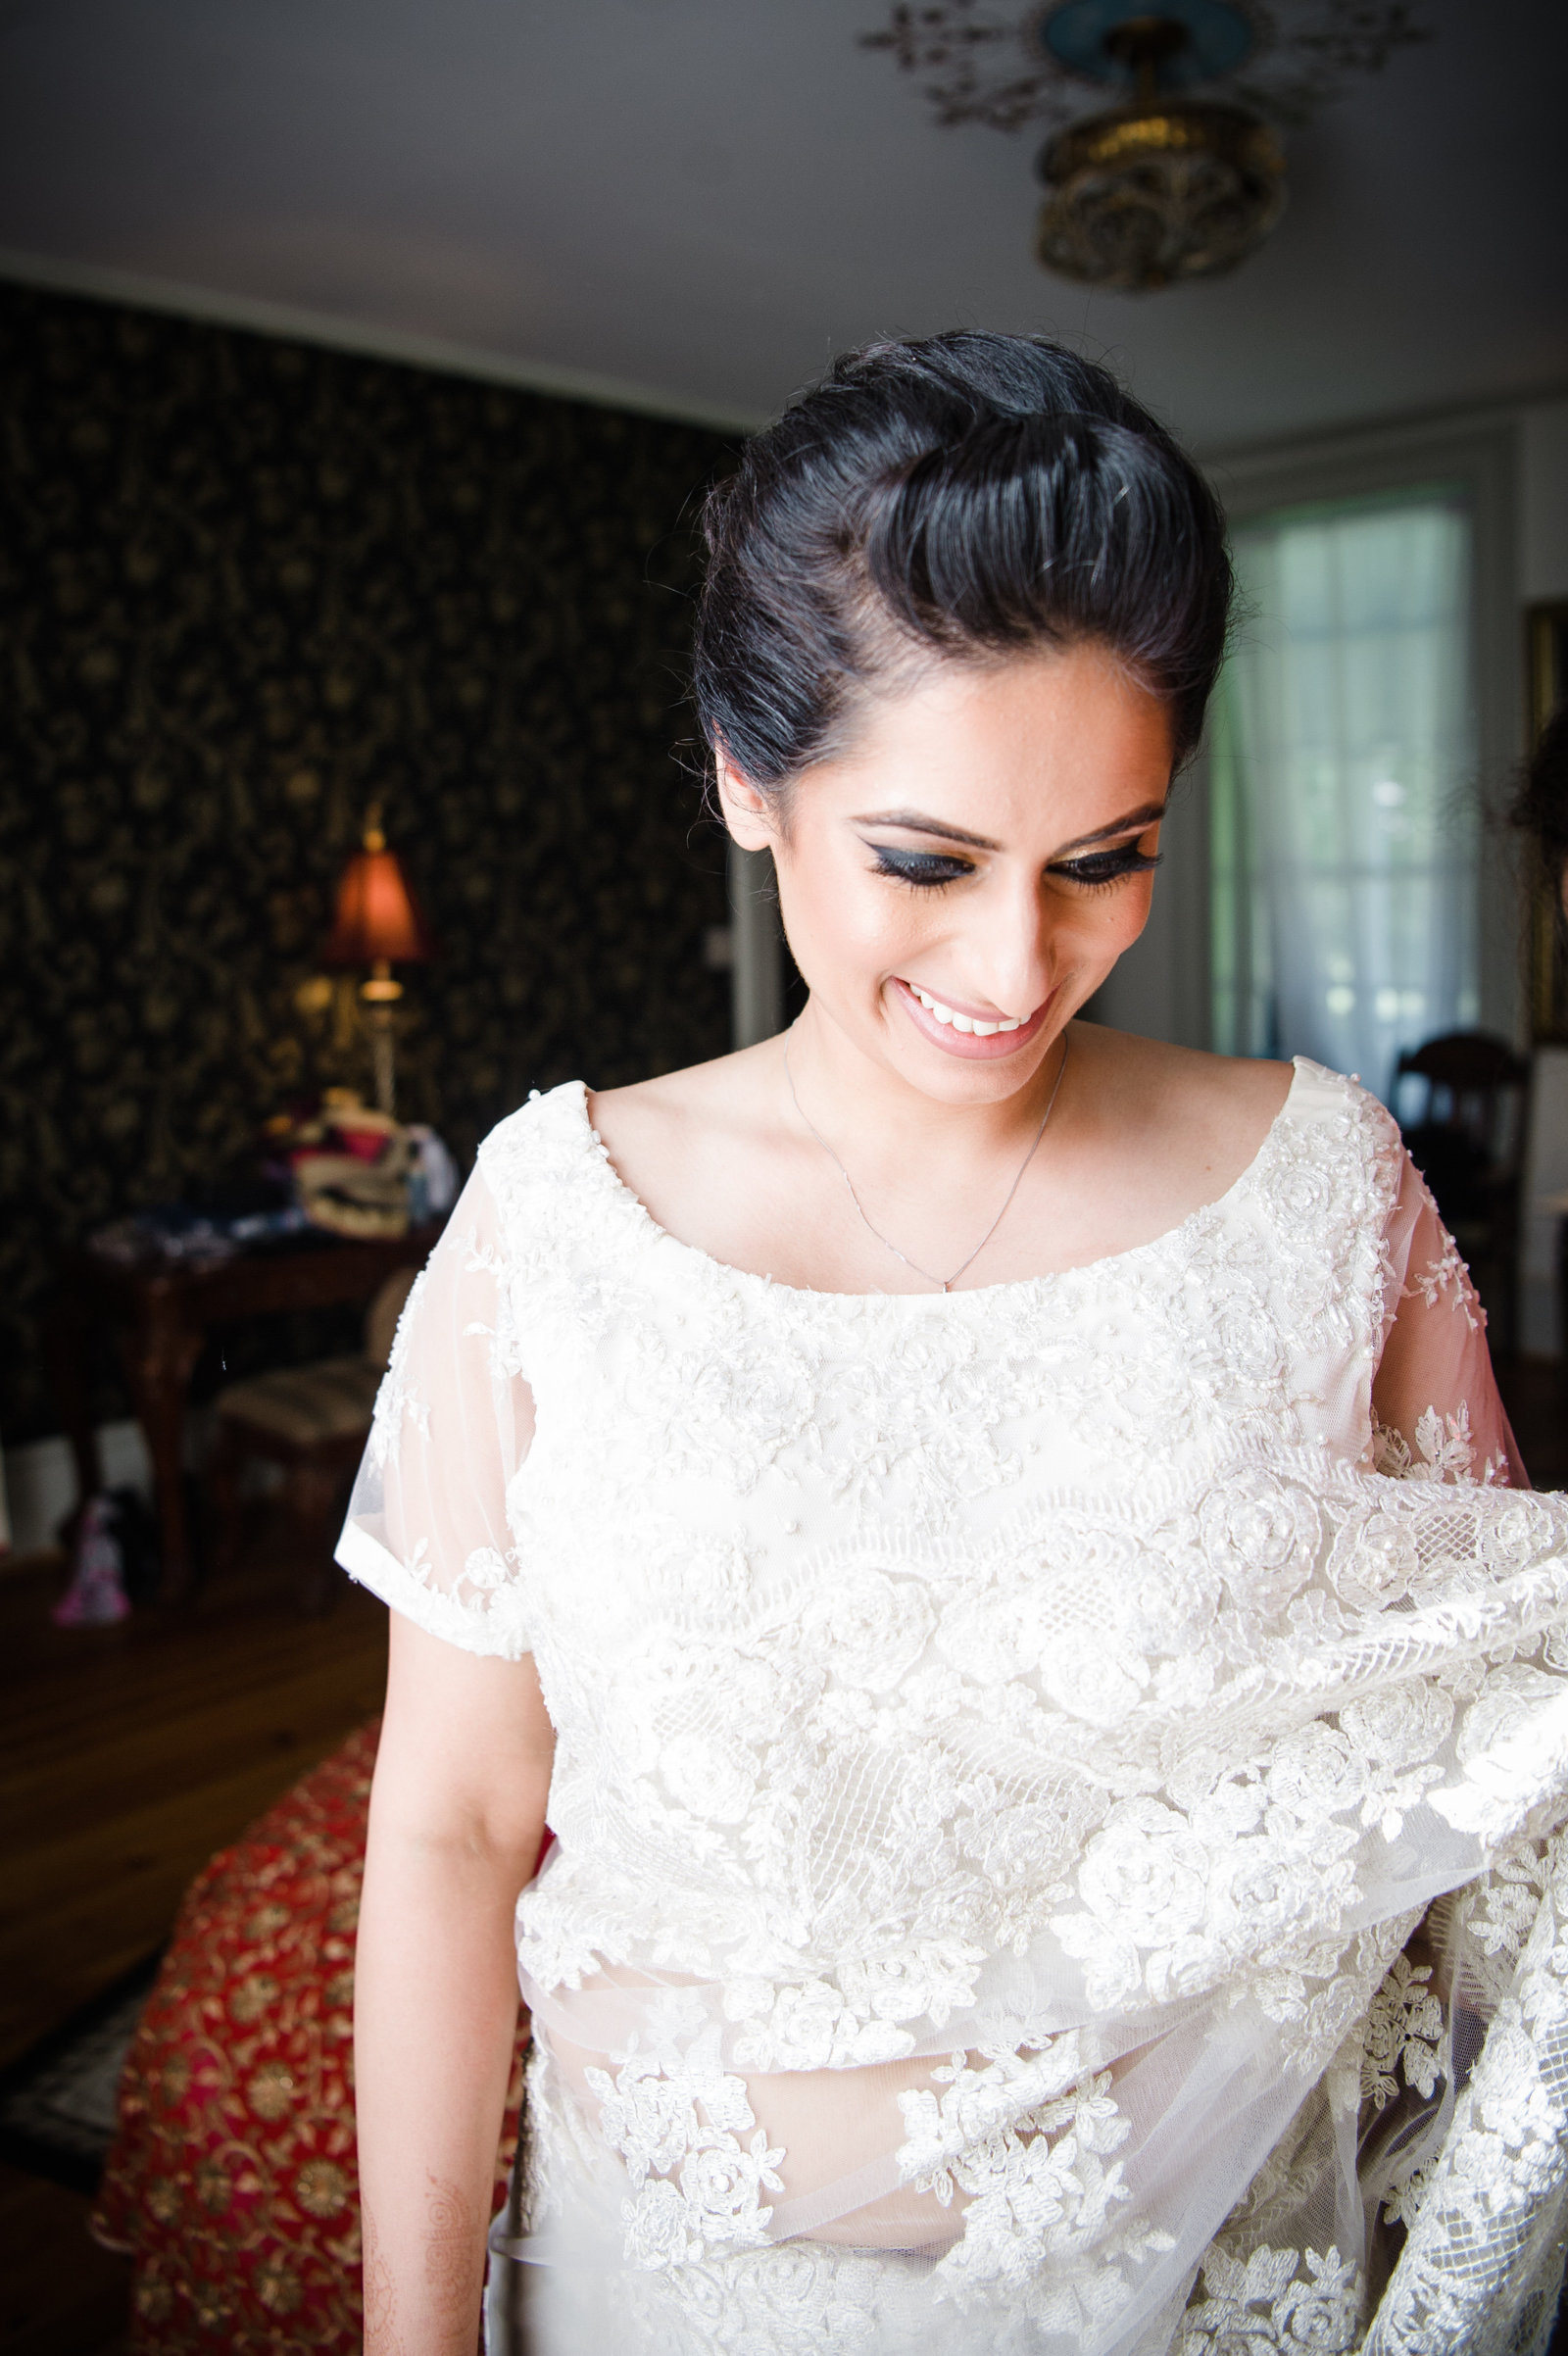 Minhas-Sohail Wedding by The Hill Studios-60